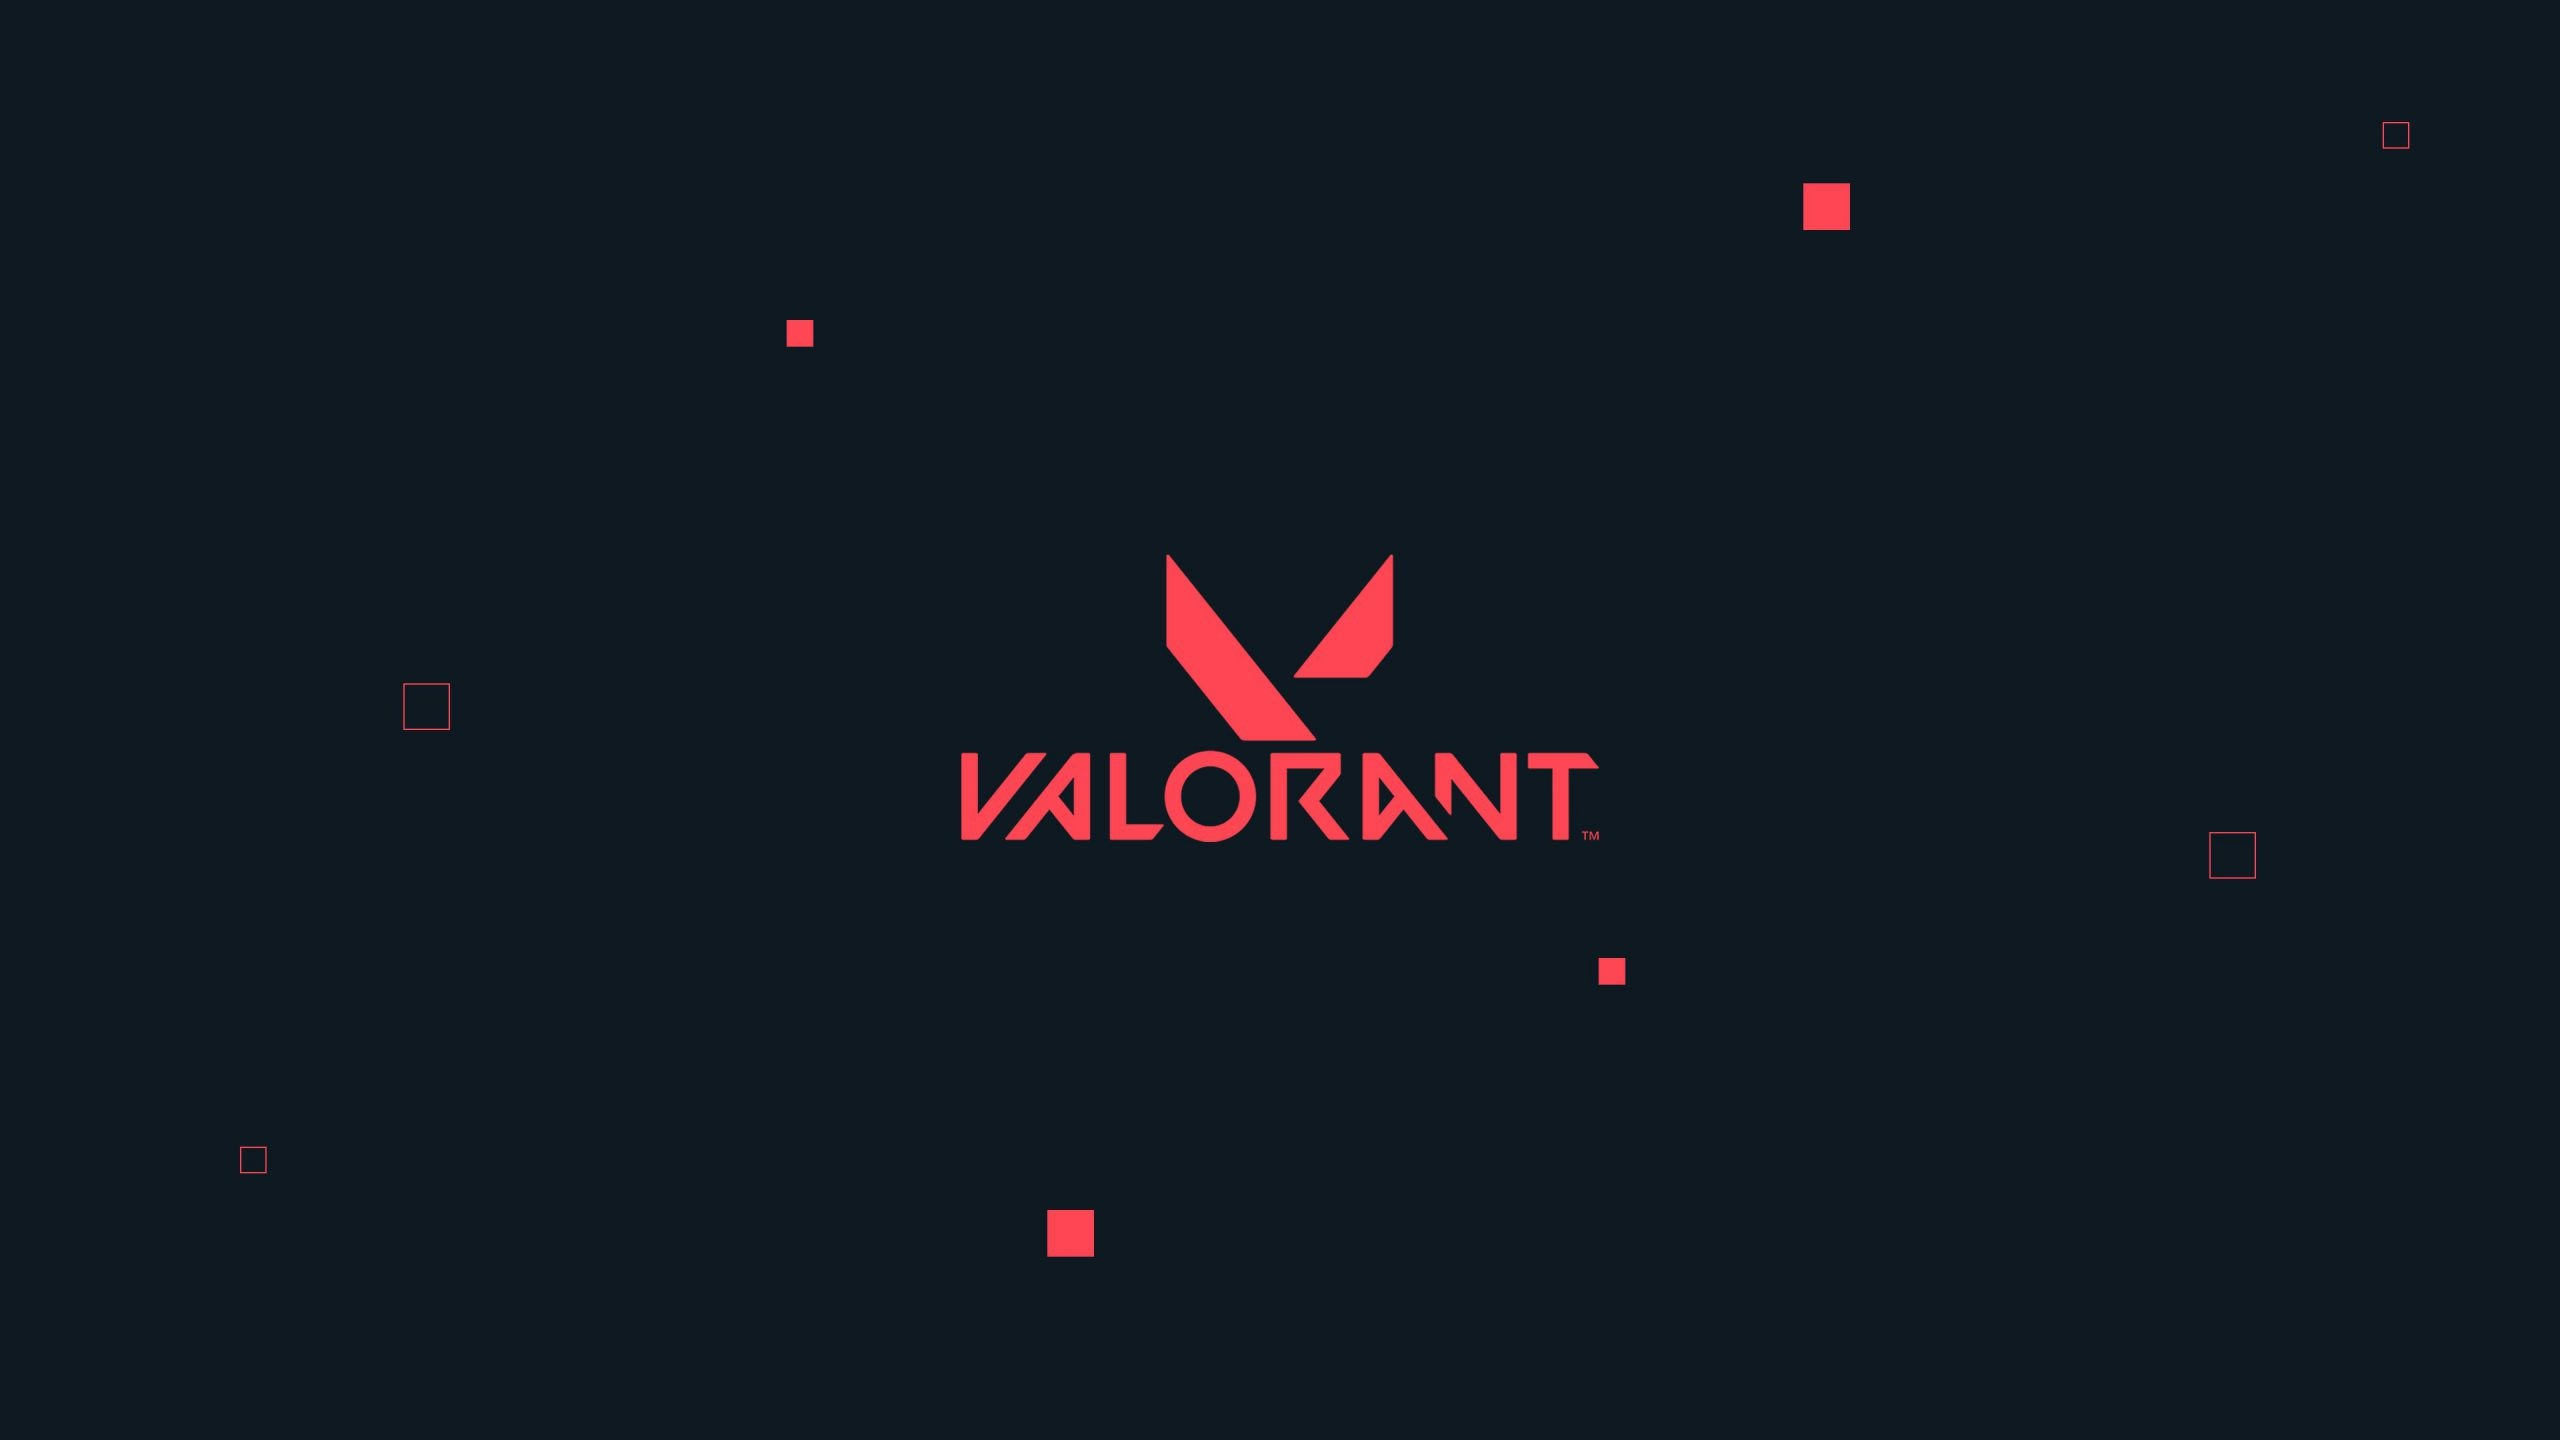 Valorant 4K Background - KoLPaPer - Awesome Free HD Wallpapers